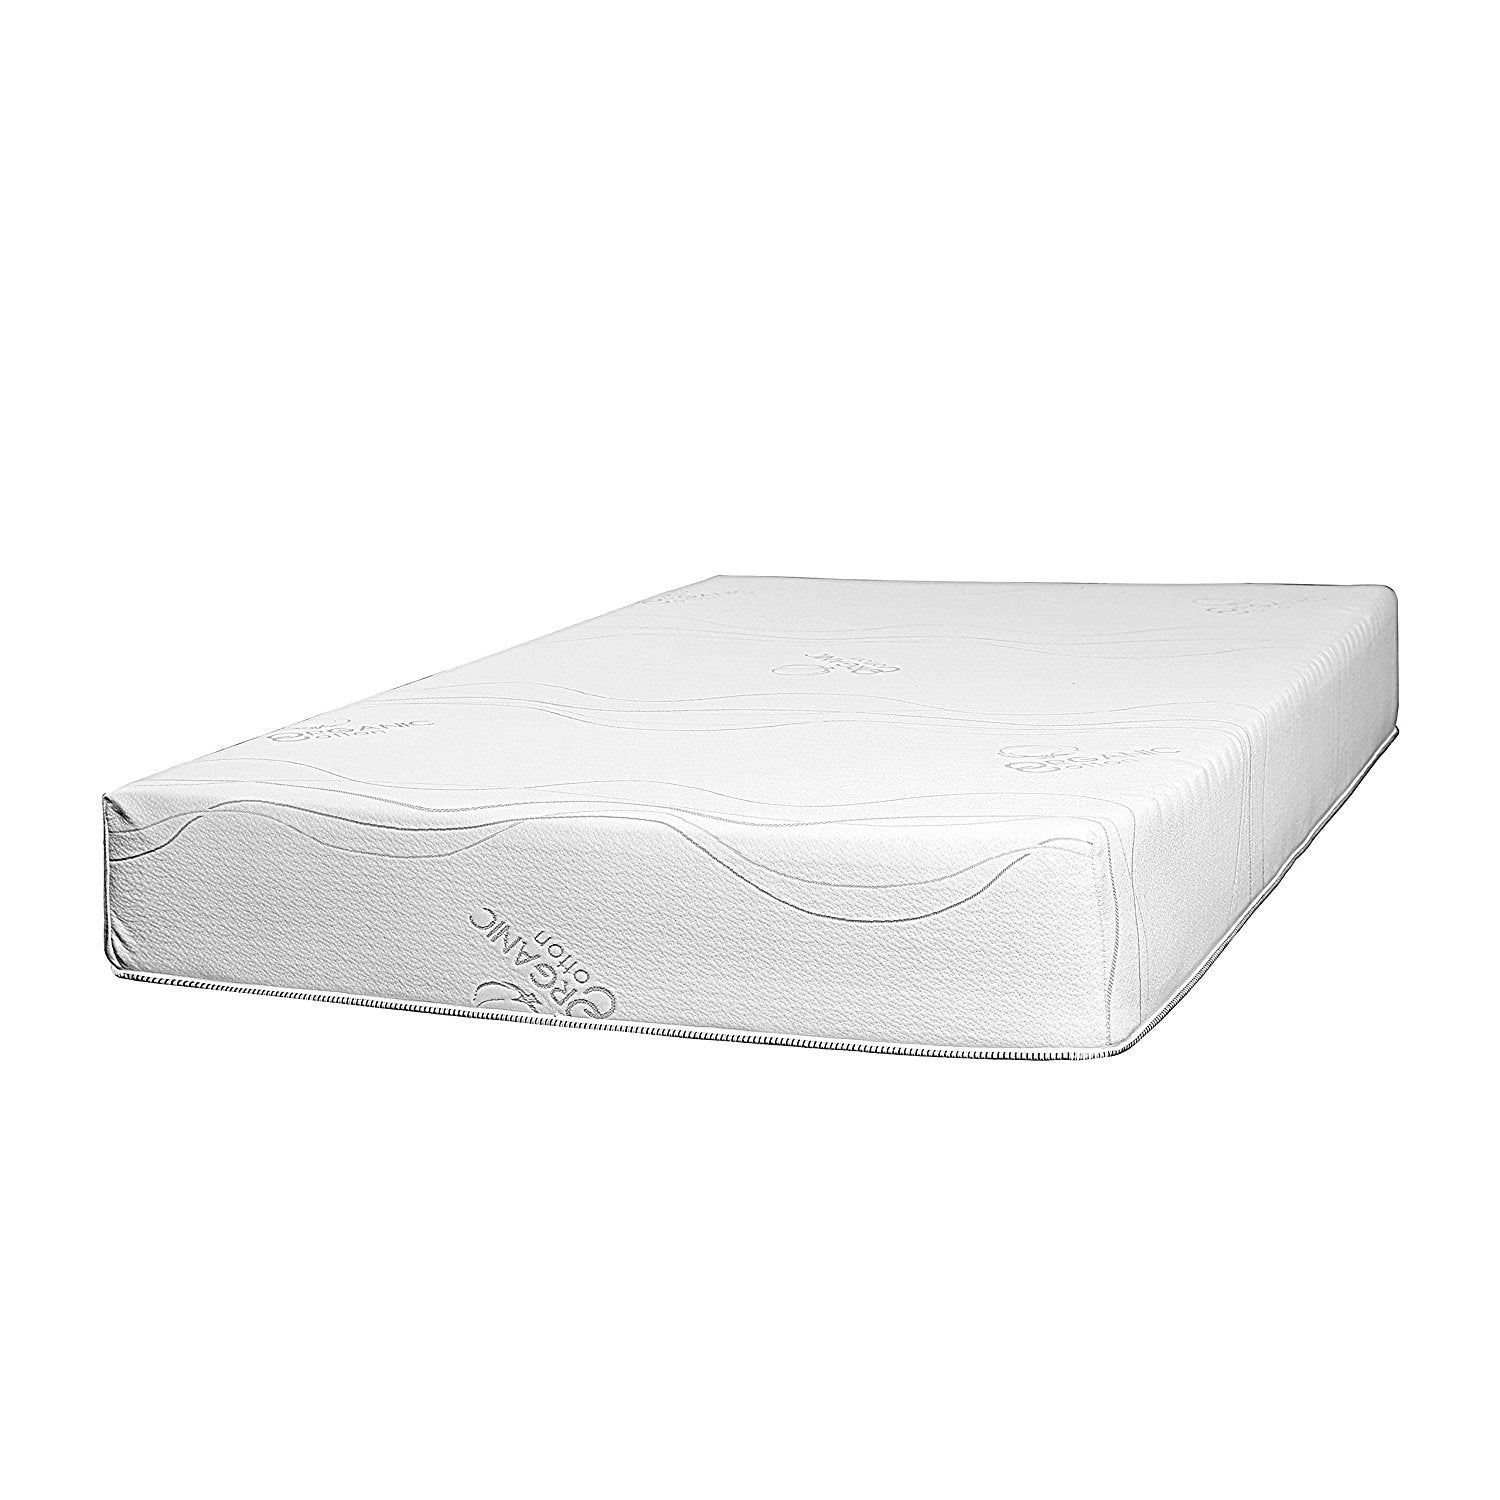 Fortnight Bedding 10 Inch Full-size Latex Foam Mattress (Full, 10)